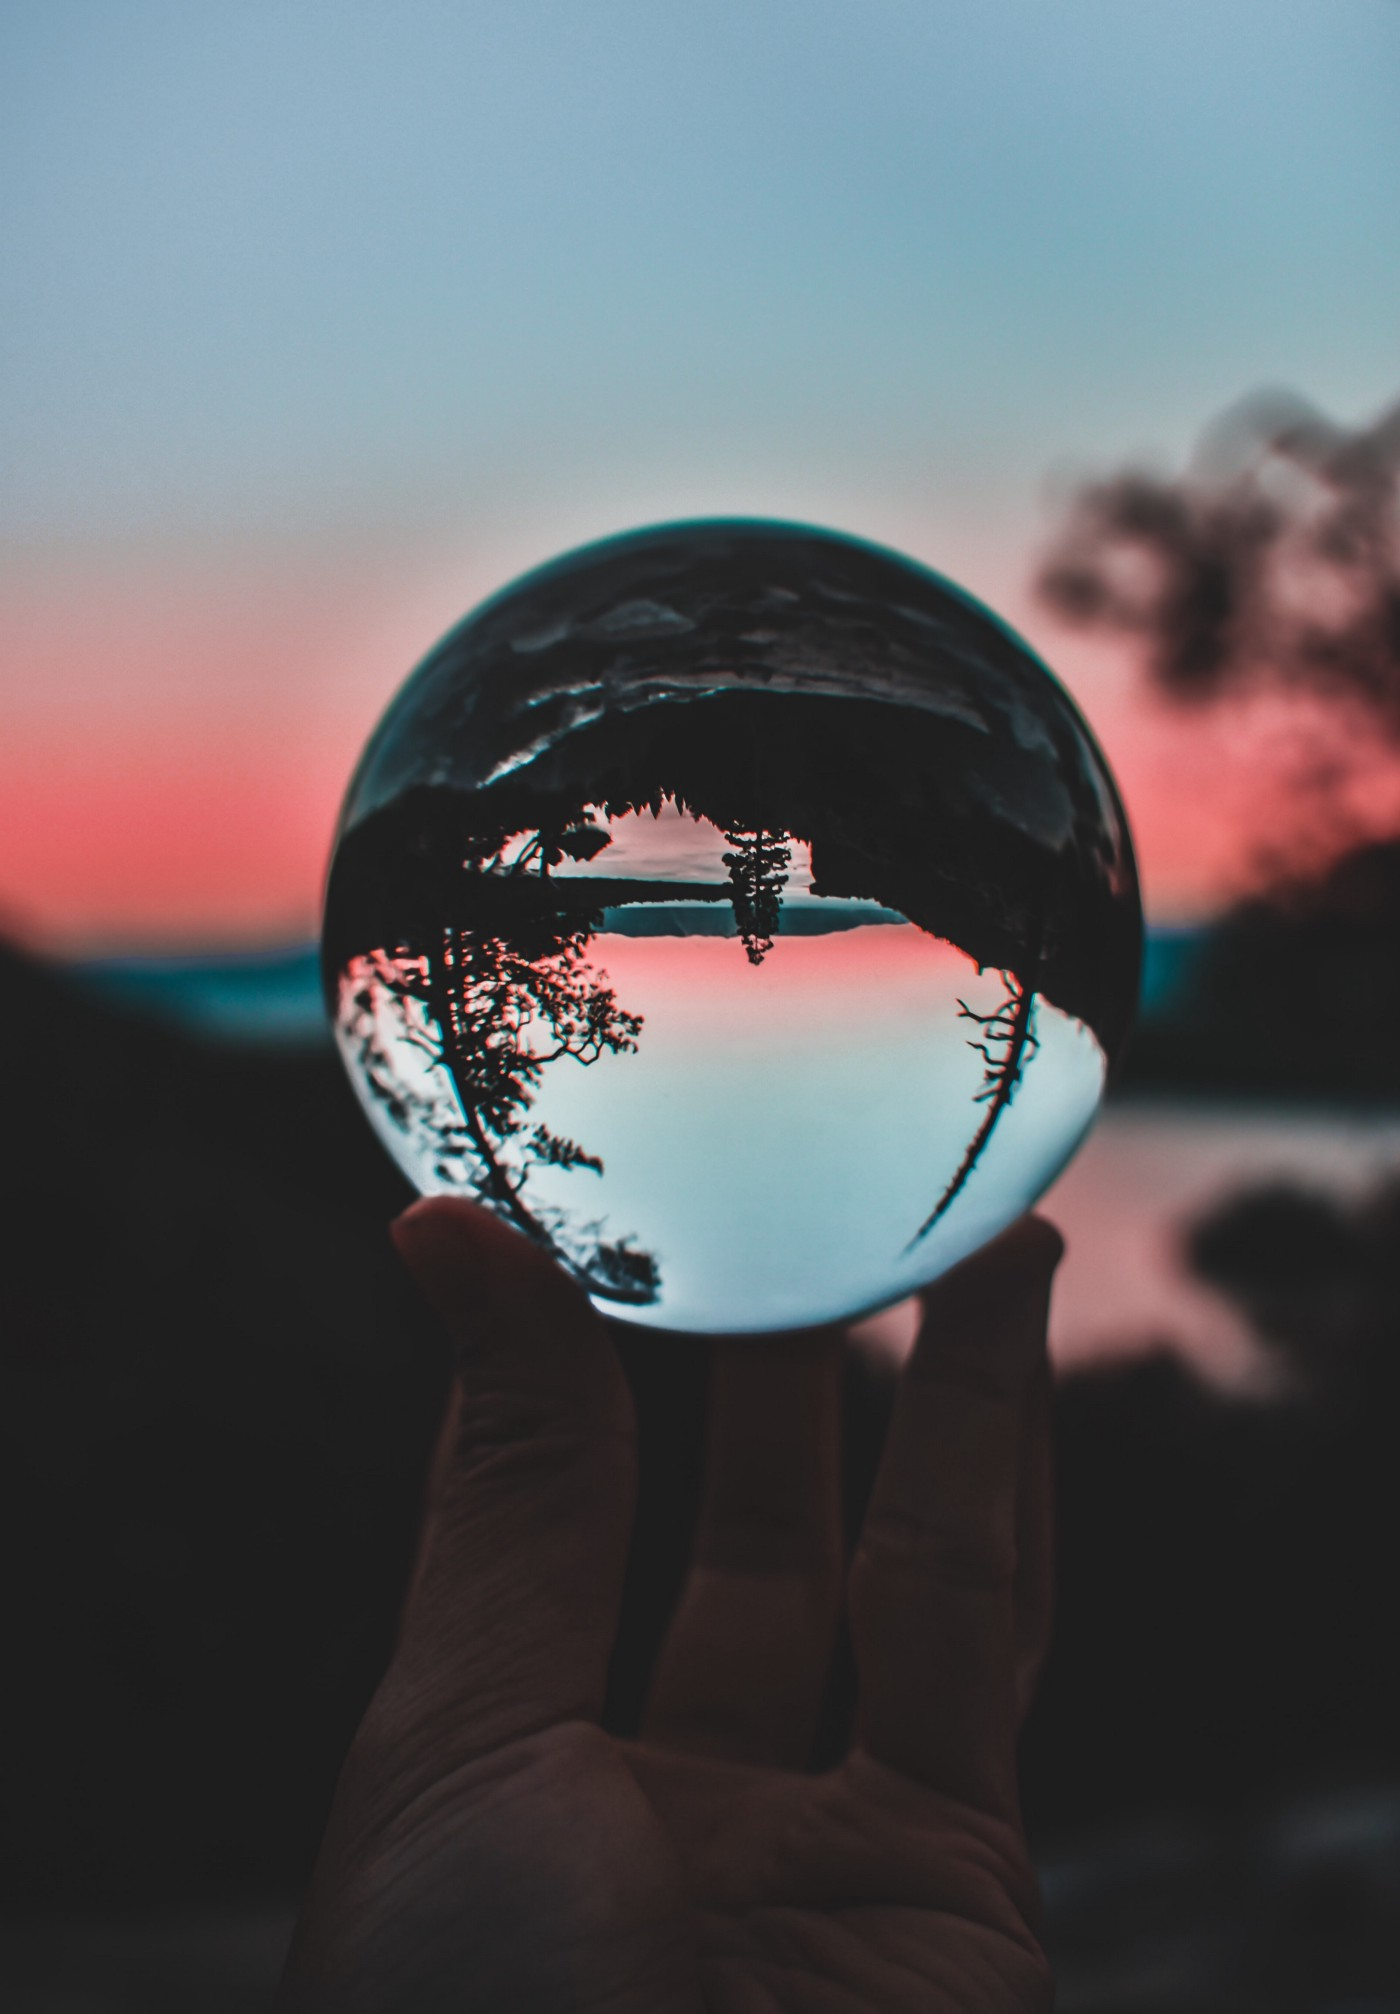 Photo of glass ball reflecting trees and sky upside-down, by Mathilda Khoo on Unsplash